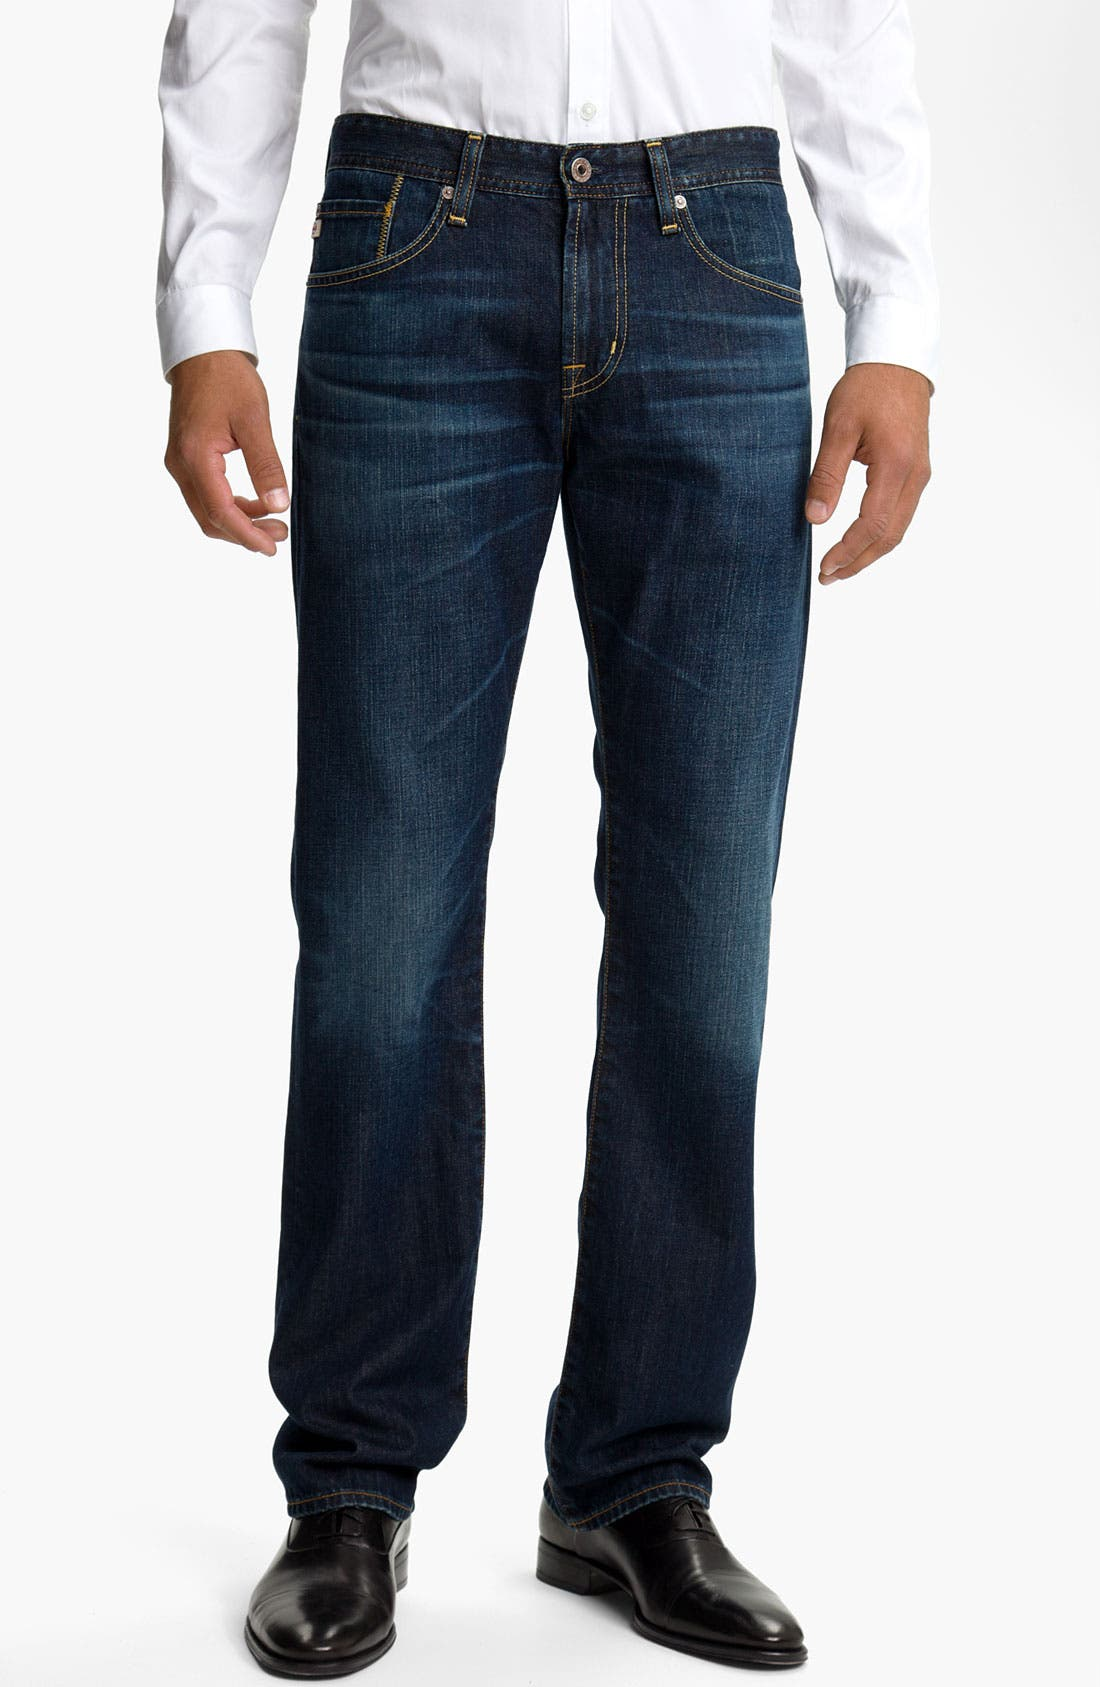 Alternate Image 1 Selected - AG Jeans 'Protégé' Straight Leg Jeans (Seven Year Smooth)